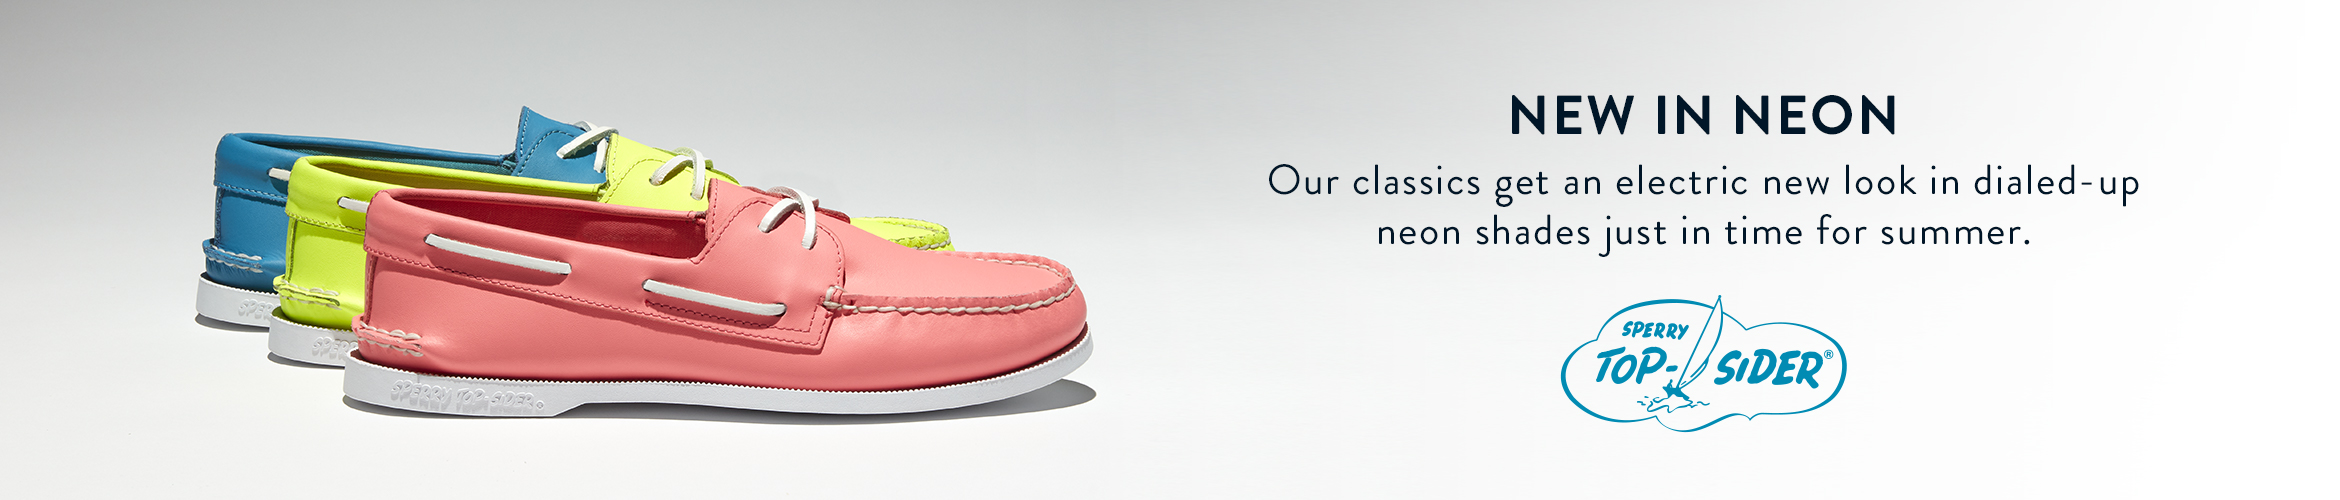 New In Neon - Our Classics get an electric new look in dialed-up neon shades just in time for summer.